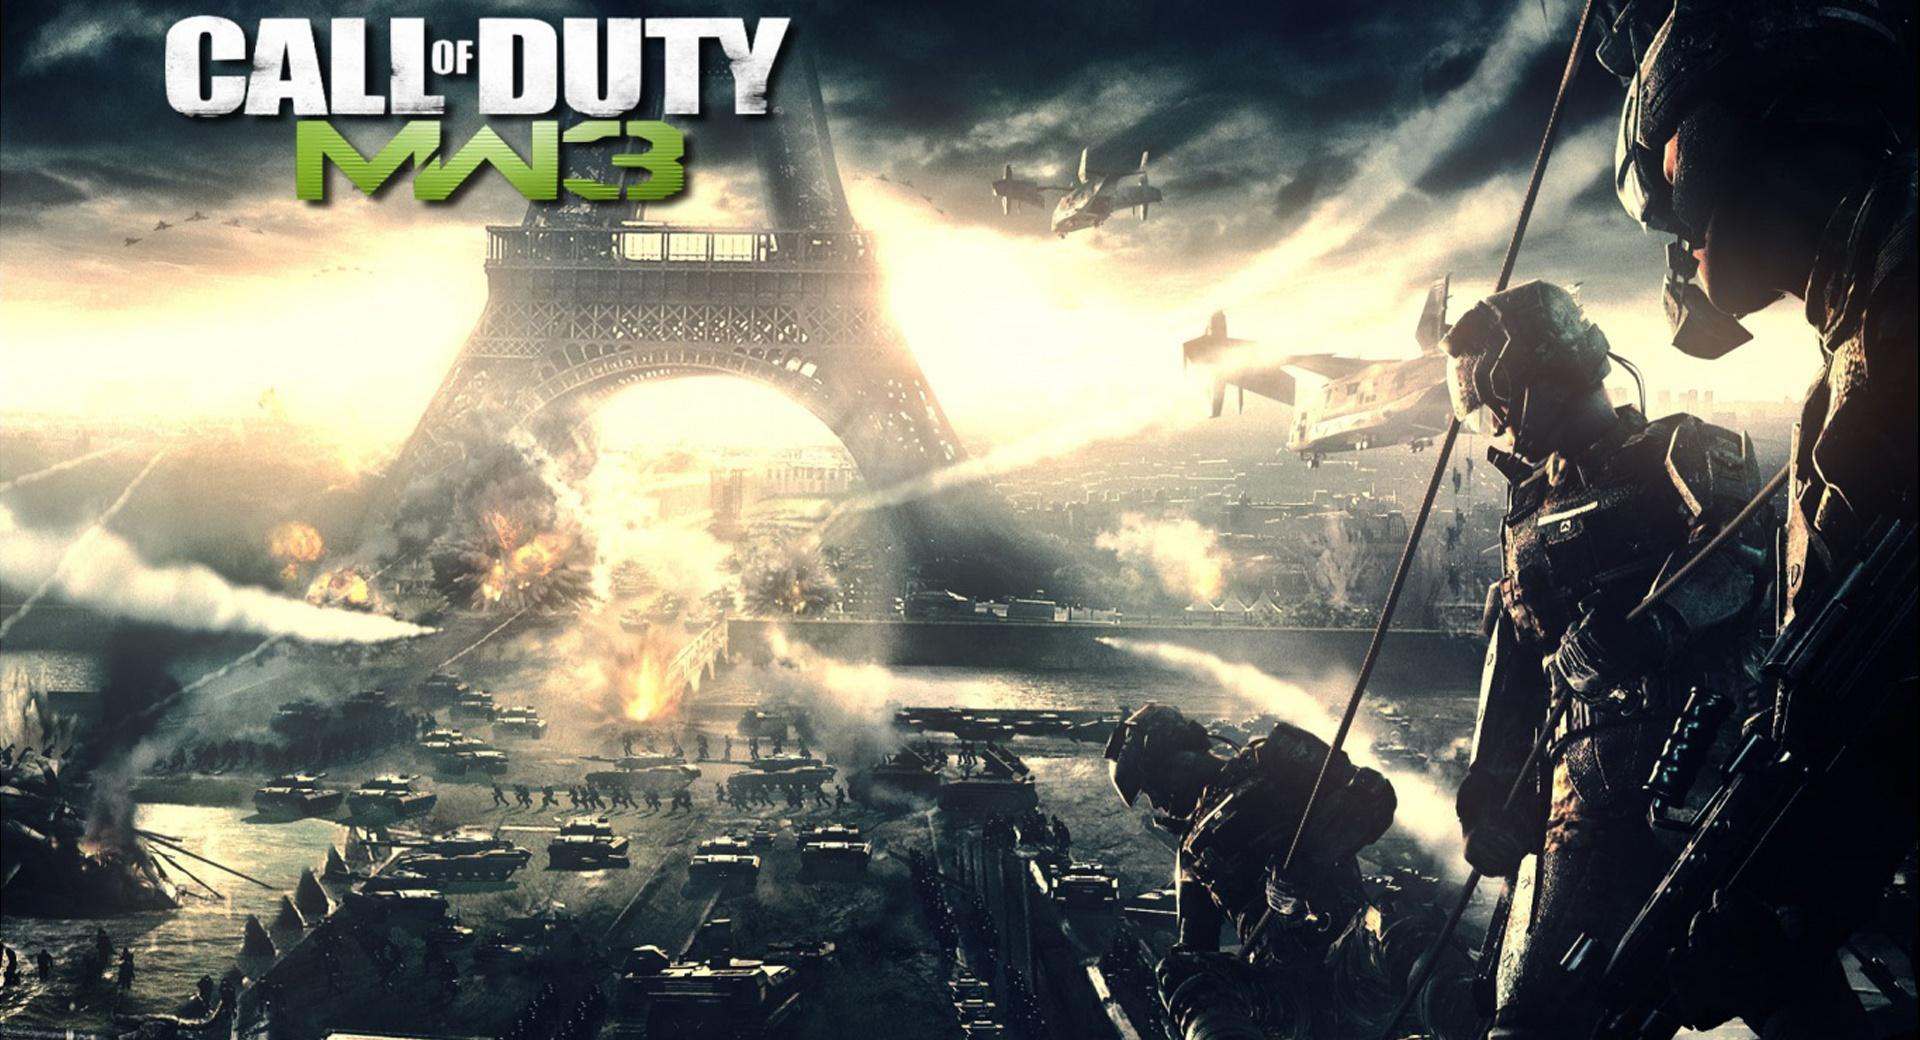 Call Of Duty MW 3 wallpapers HD quality